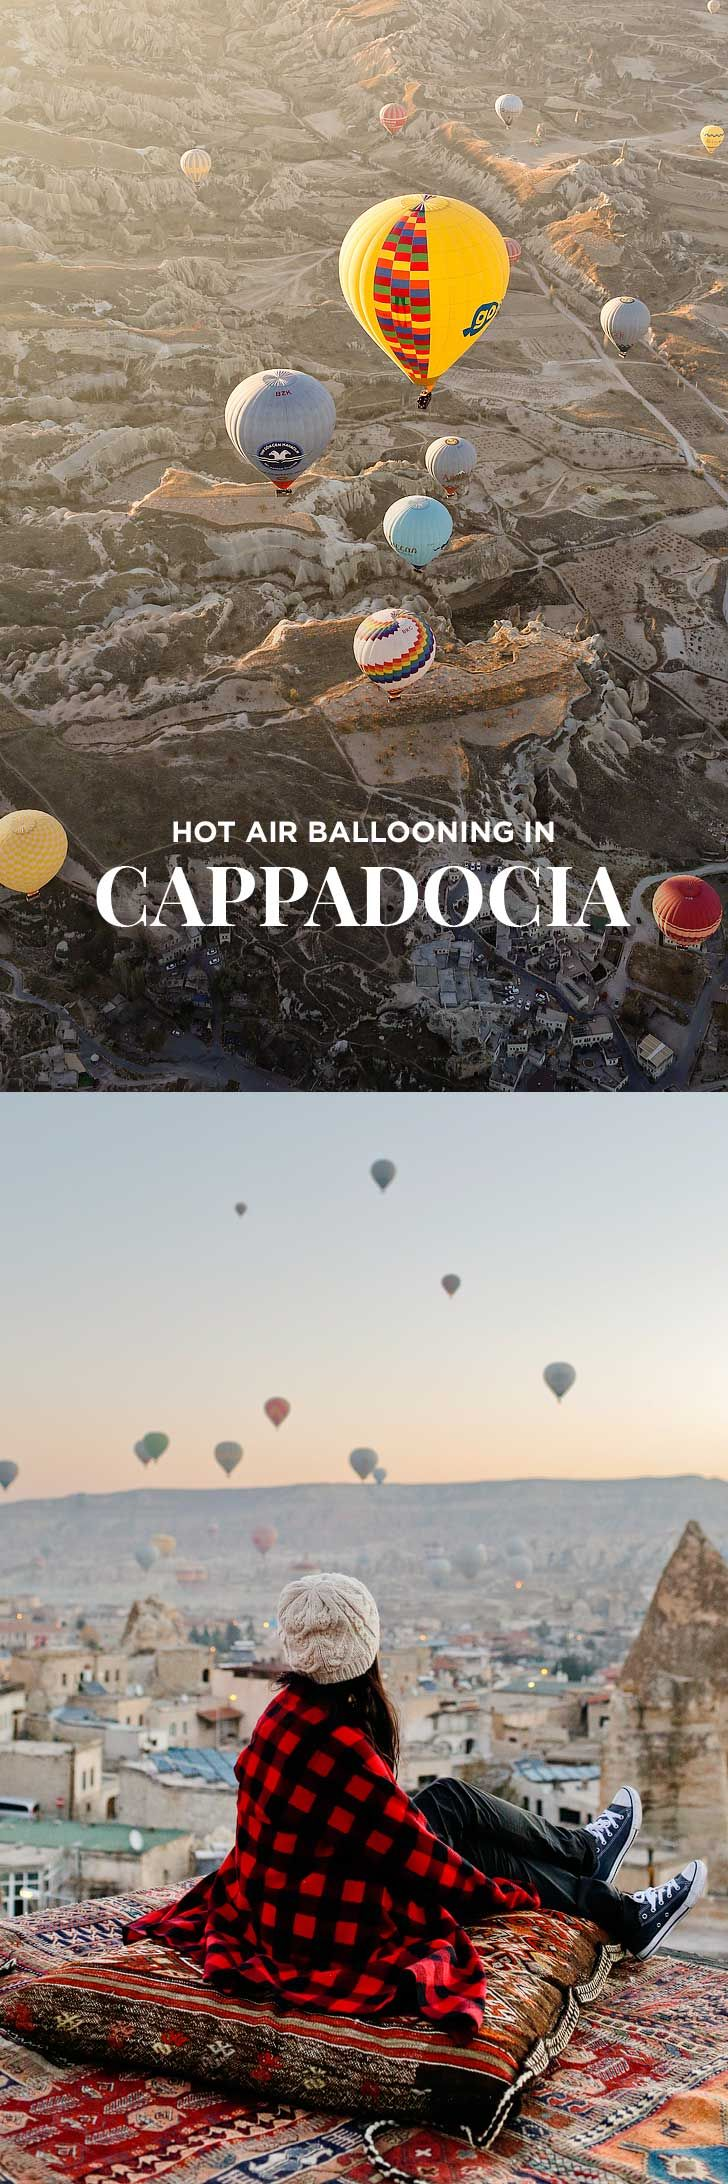 Riding Cappadocia Hot Air Balloons in Turkey Hot air